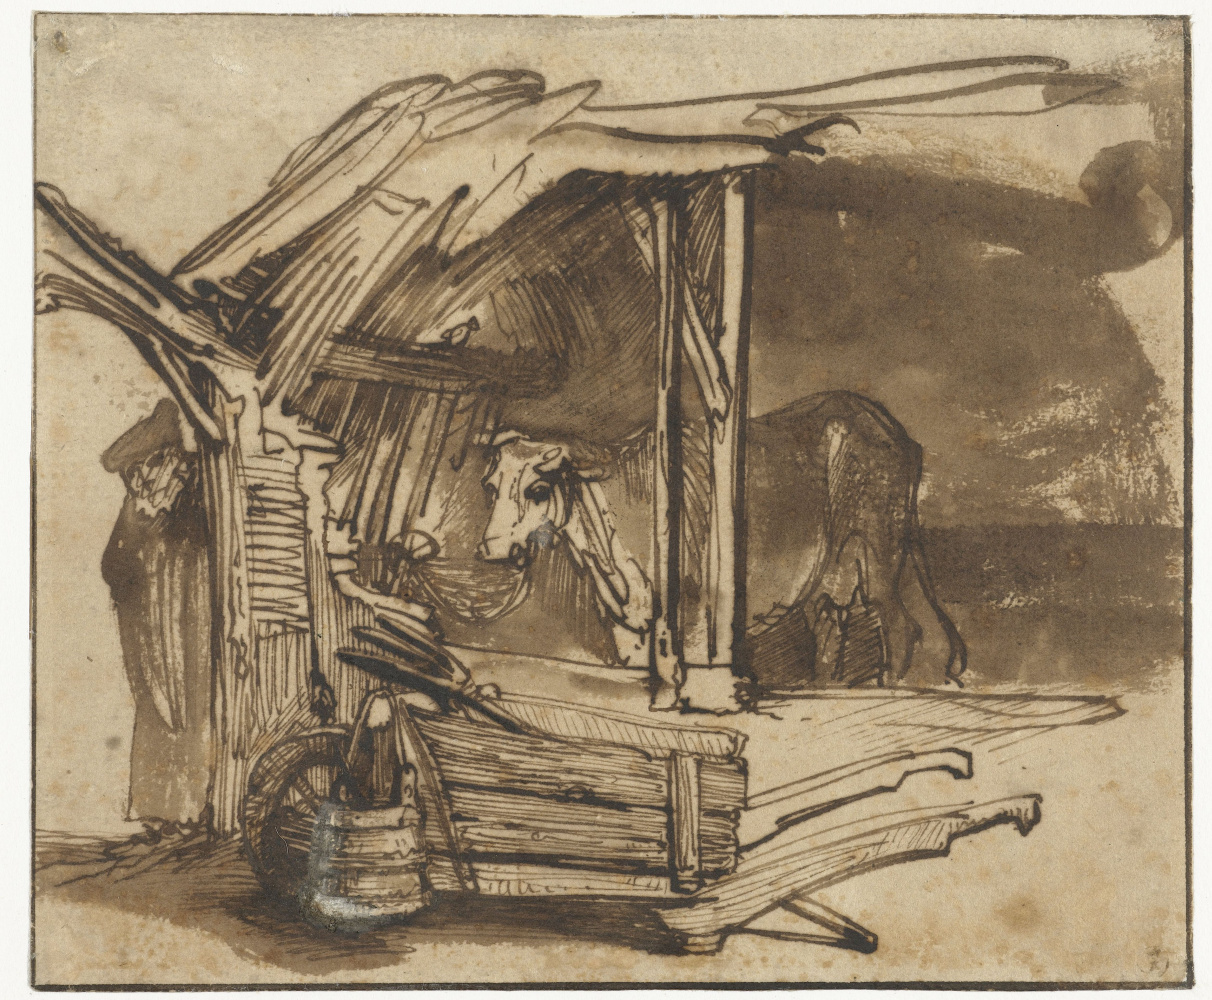 Rembrandt Harmenszoon van Rijn. A Cow in a Shed